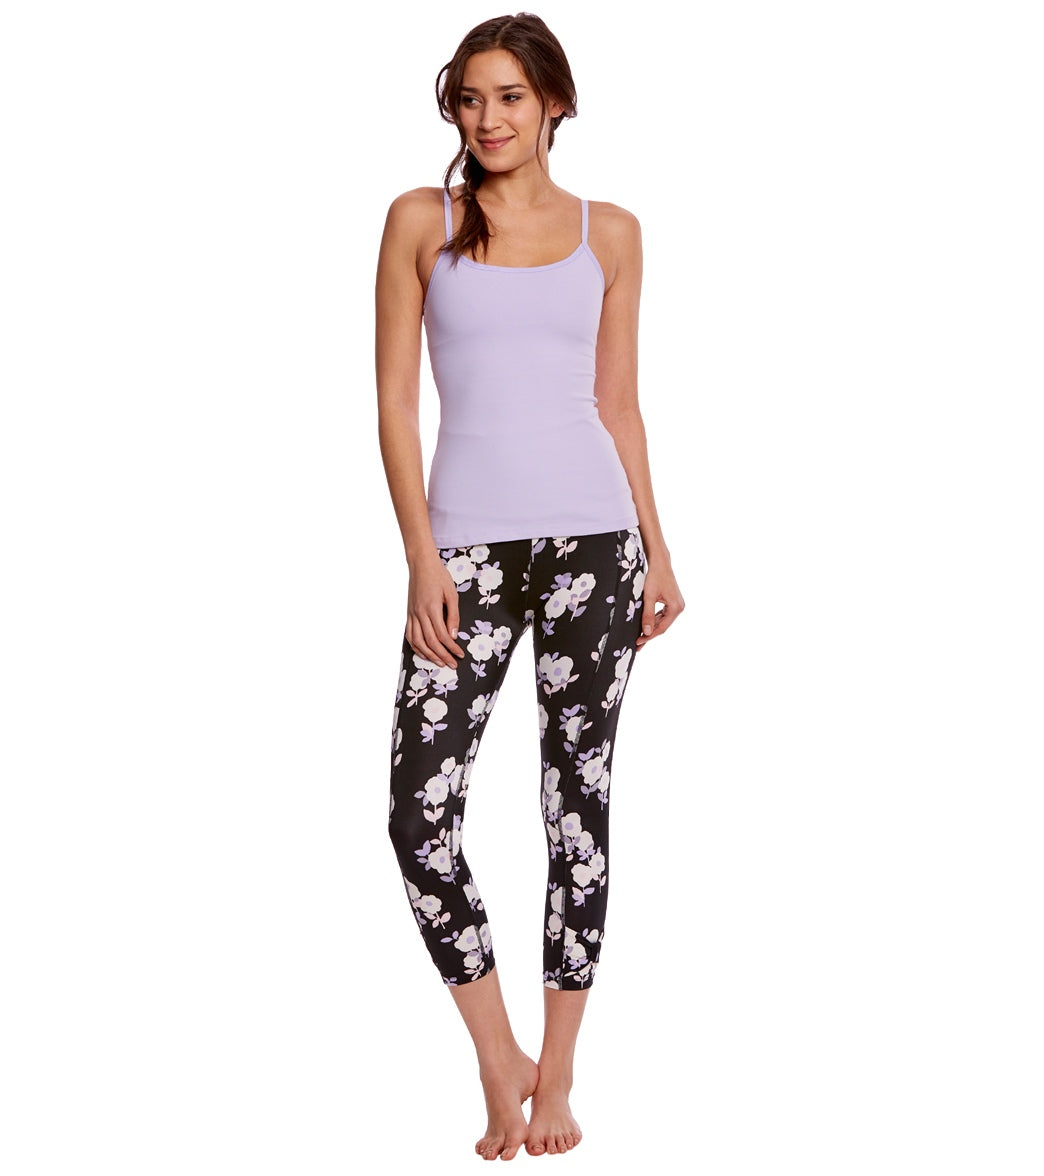 9e7c14ec3f7e89 Beyond Yoga Kate Spade Cinched Back Bow Yoga Tank Top at YogaOutlet.com -  Free Shipping